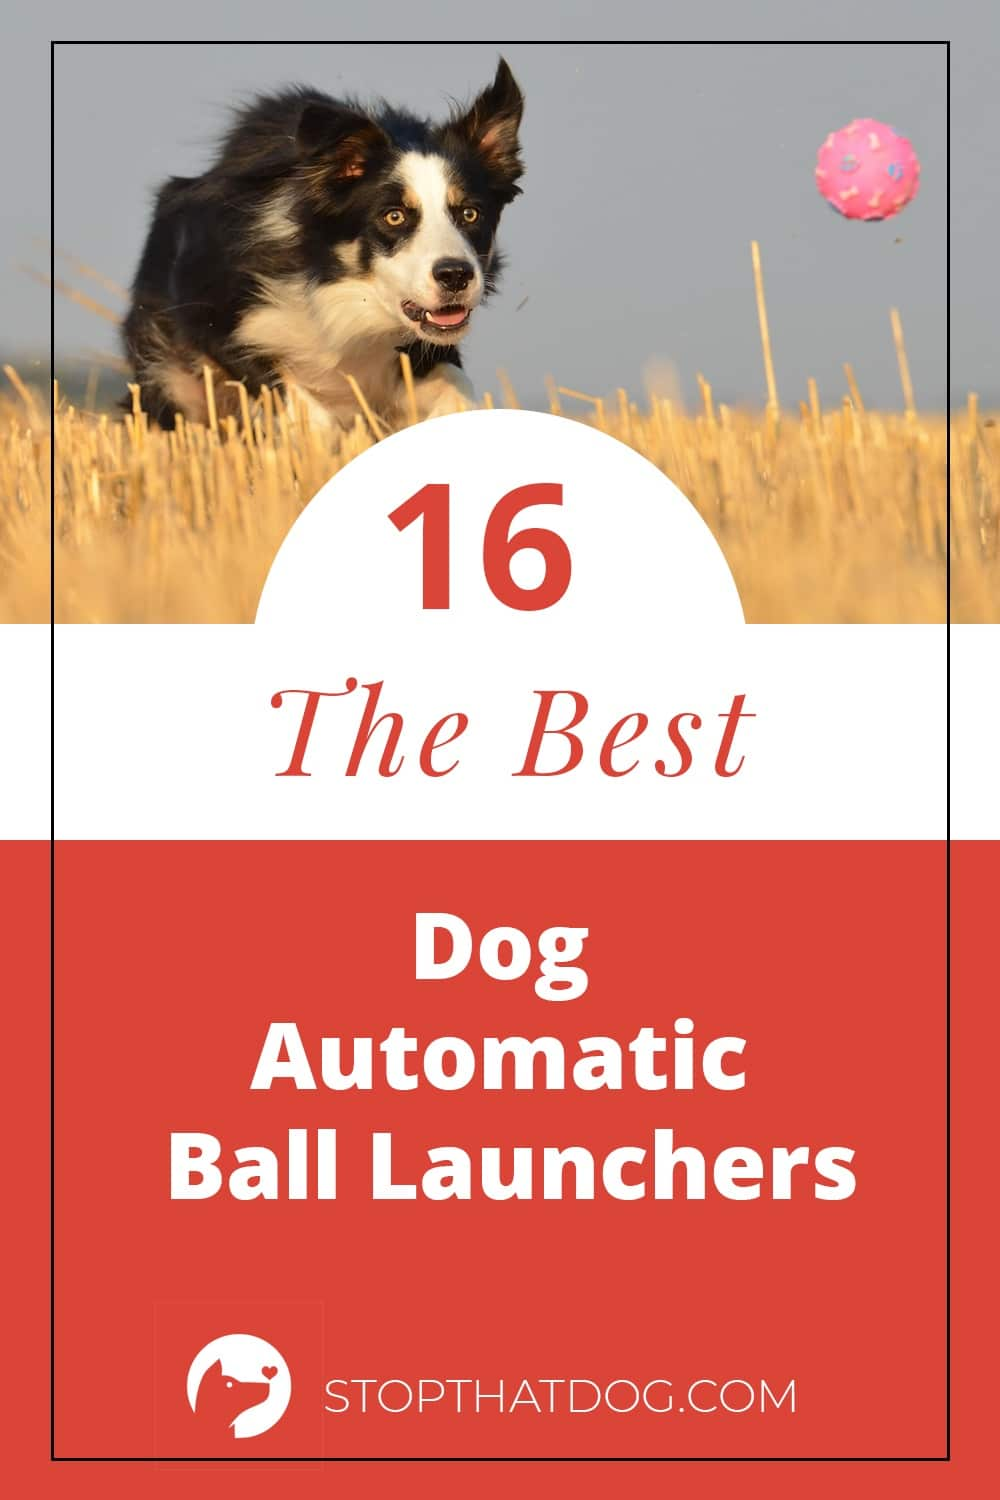 Dog Automatic Ball Launchers - A Fun Way To Keep Your Dog Active